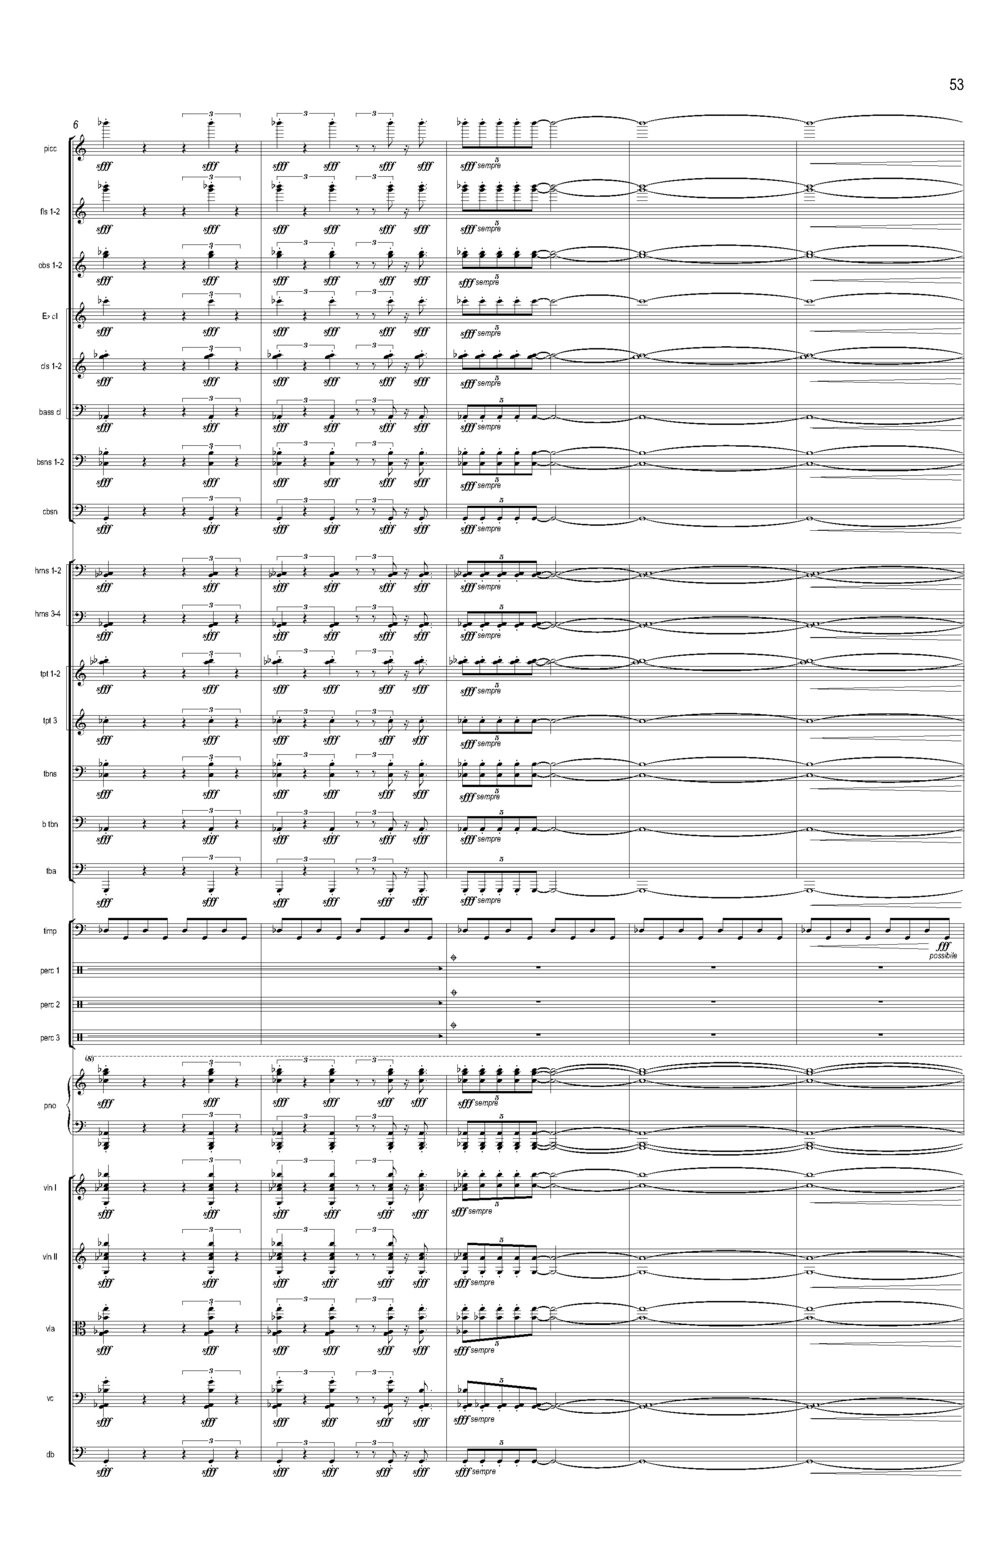 Ciach_Collective Uncommon REVISED_Full Score (Feb 2017)_Seite_59.jpg